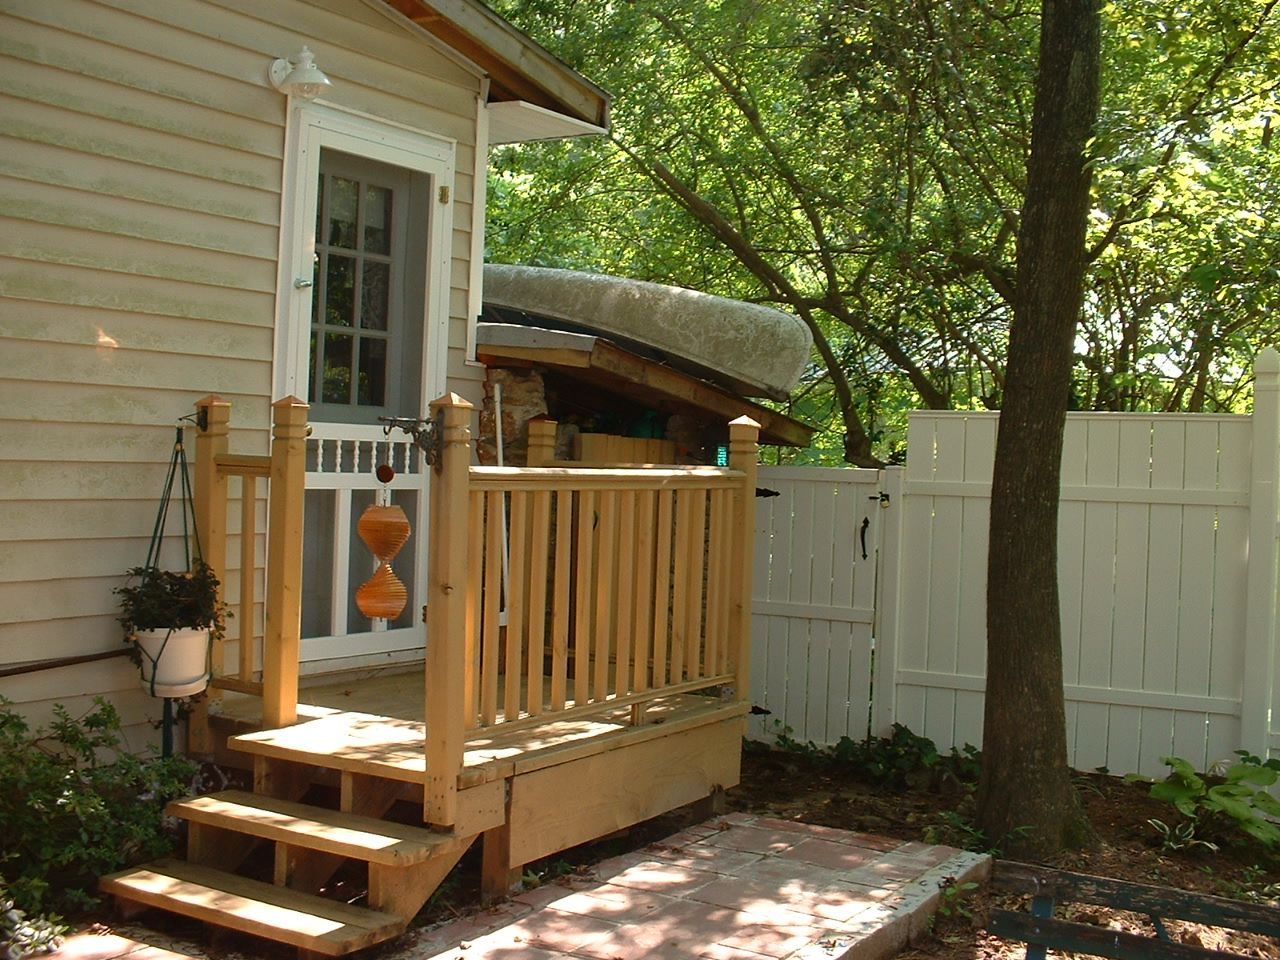 Pine lake the blog my little house in pine lake part 5 for Back entry doors for houses